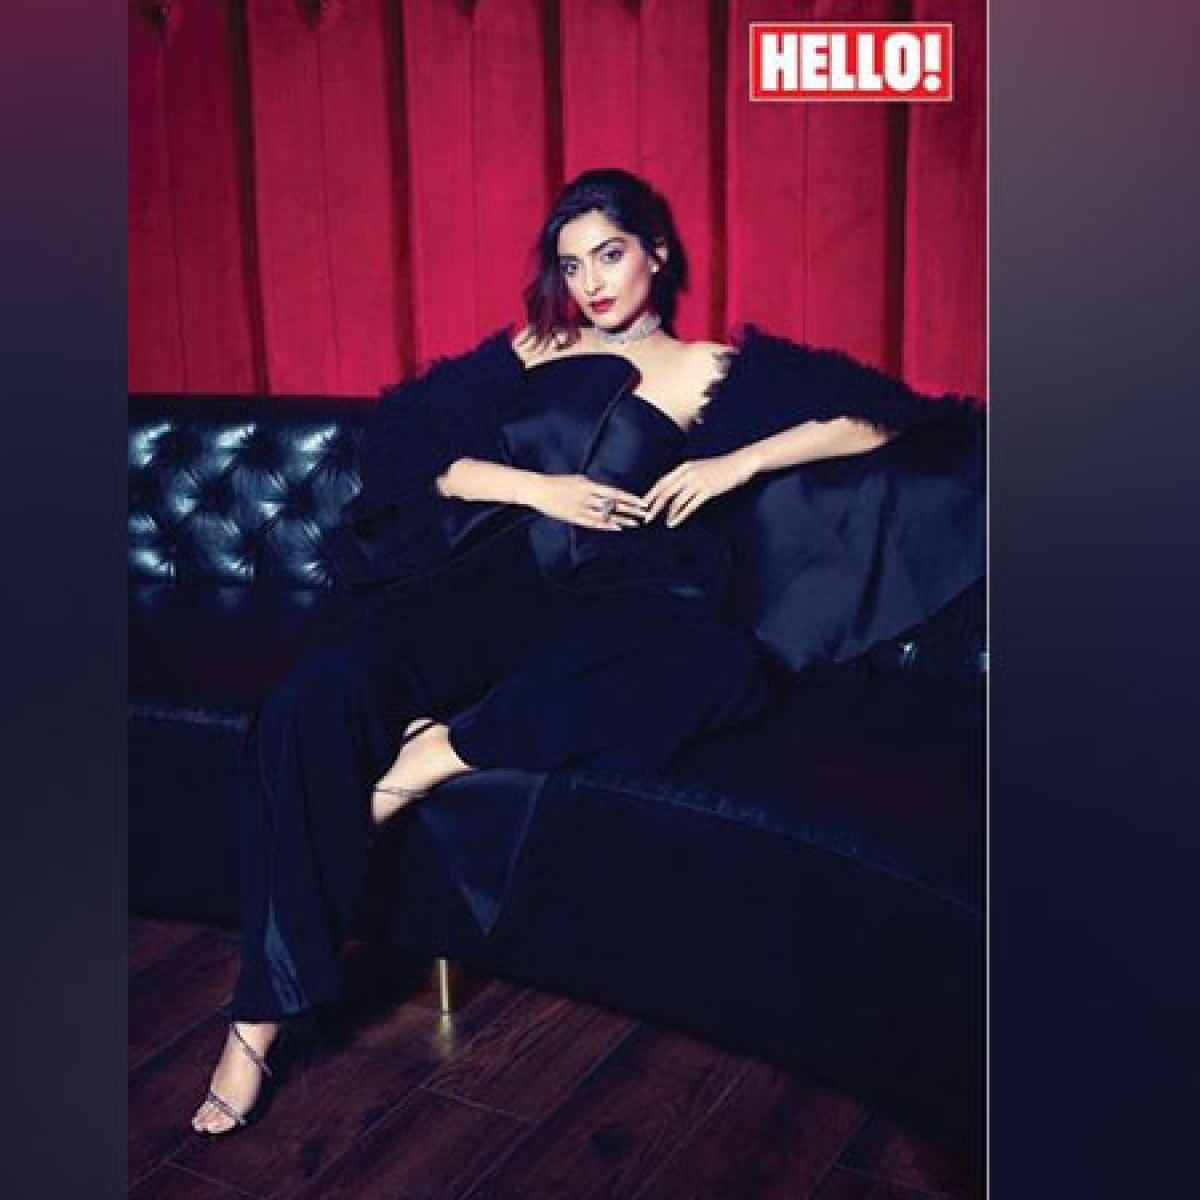 Sonam Kapoor Ahuja sizzles in black on Hello magazine cover